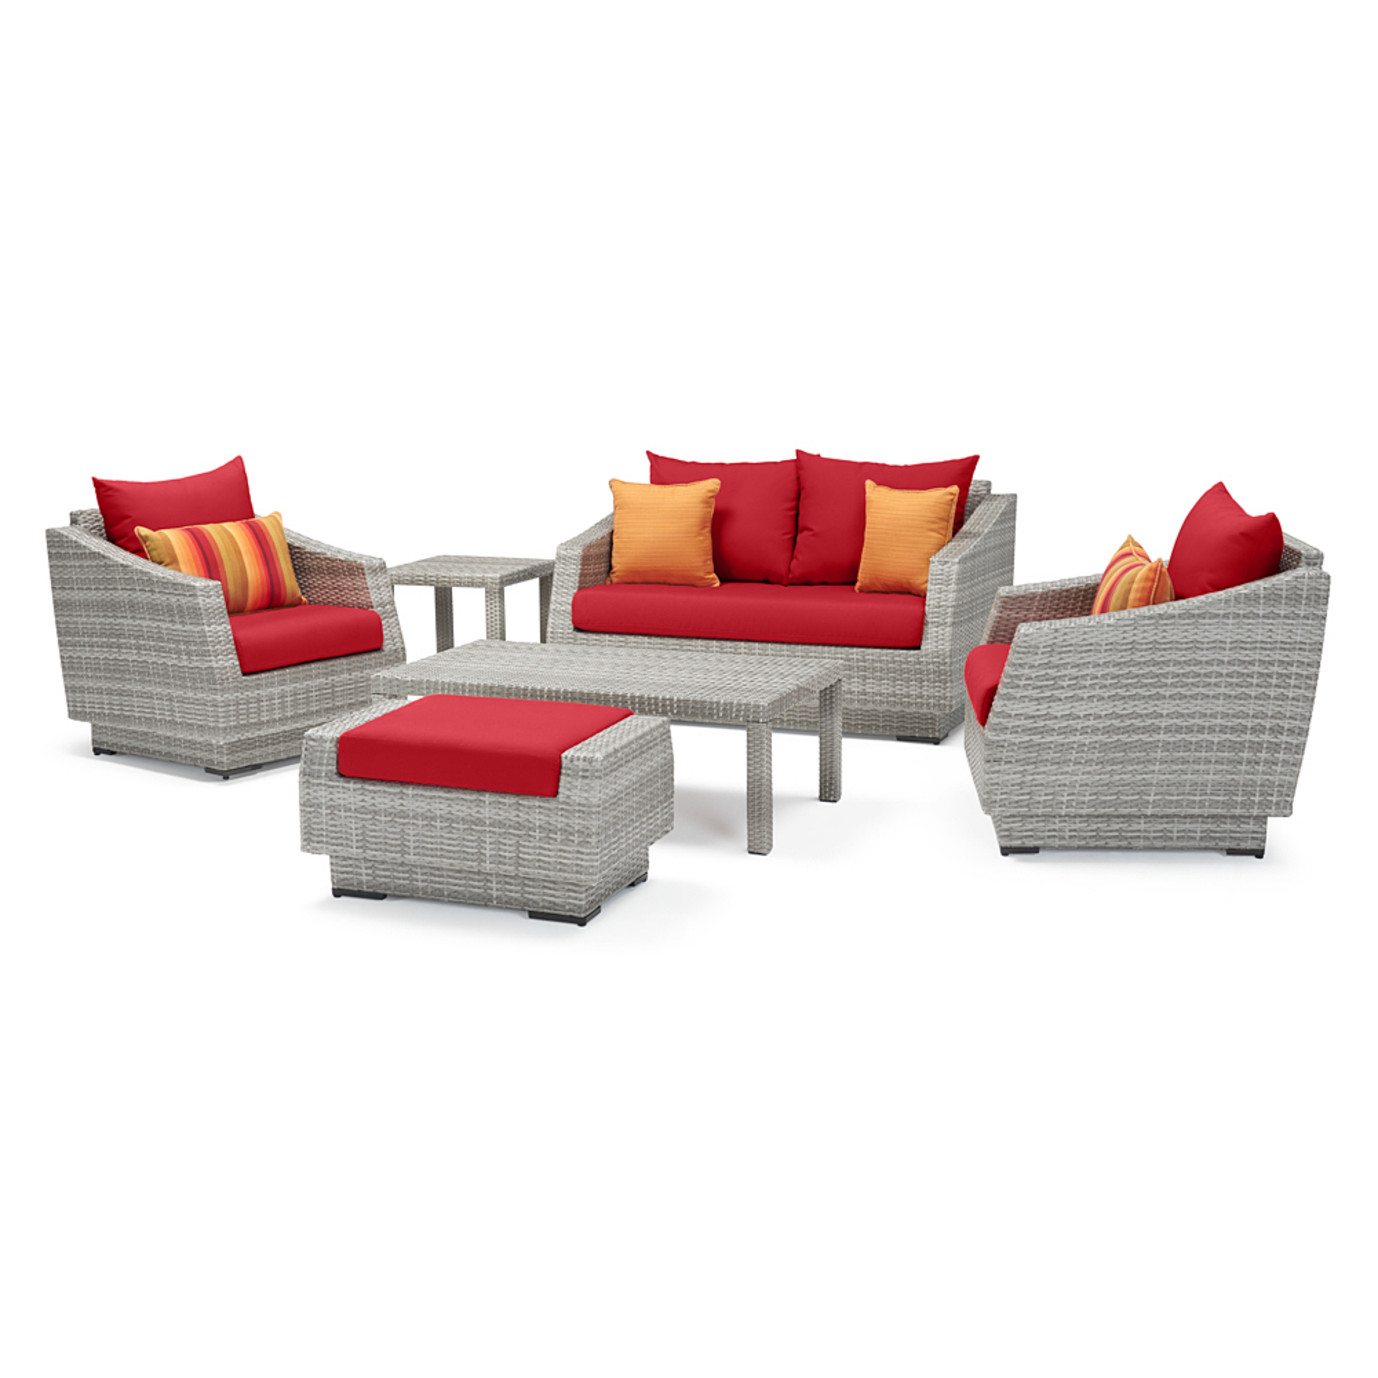 Cannes™ 6 Piece Love & Club Seating Set - Sunset Red